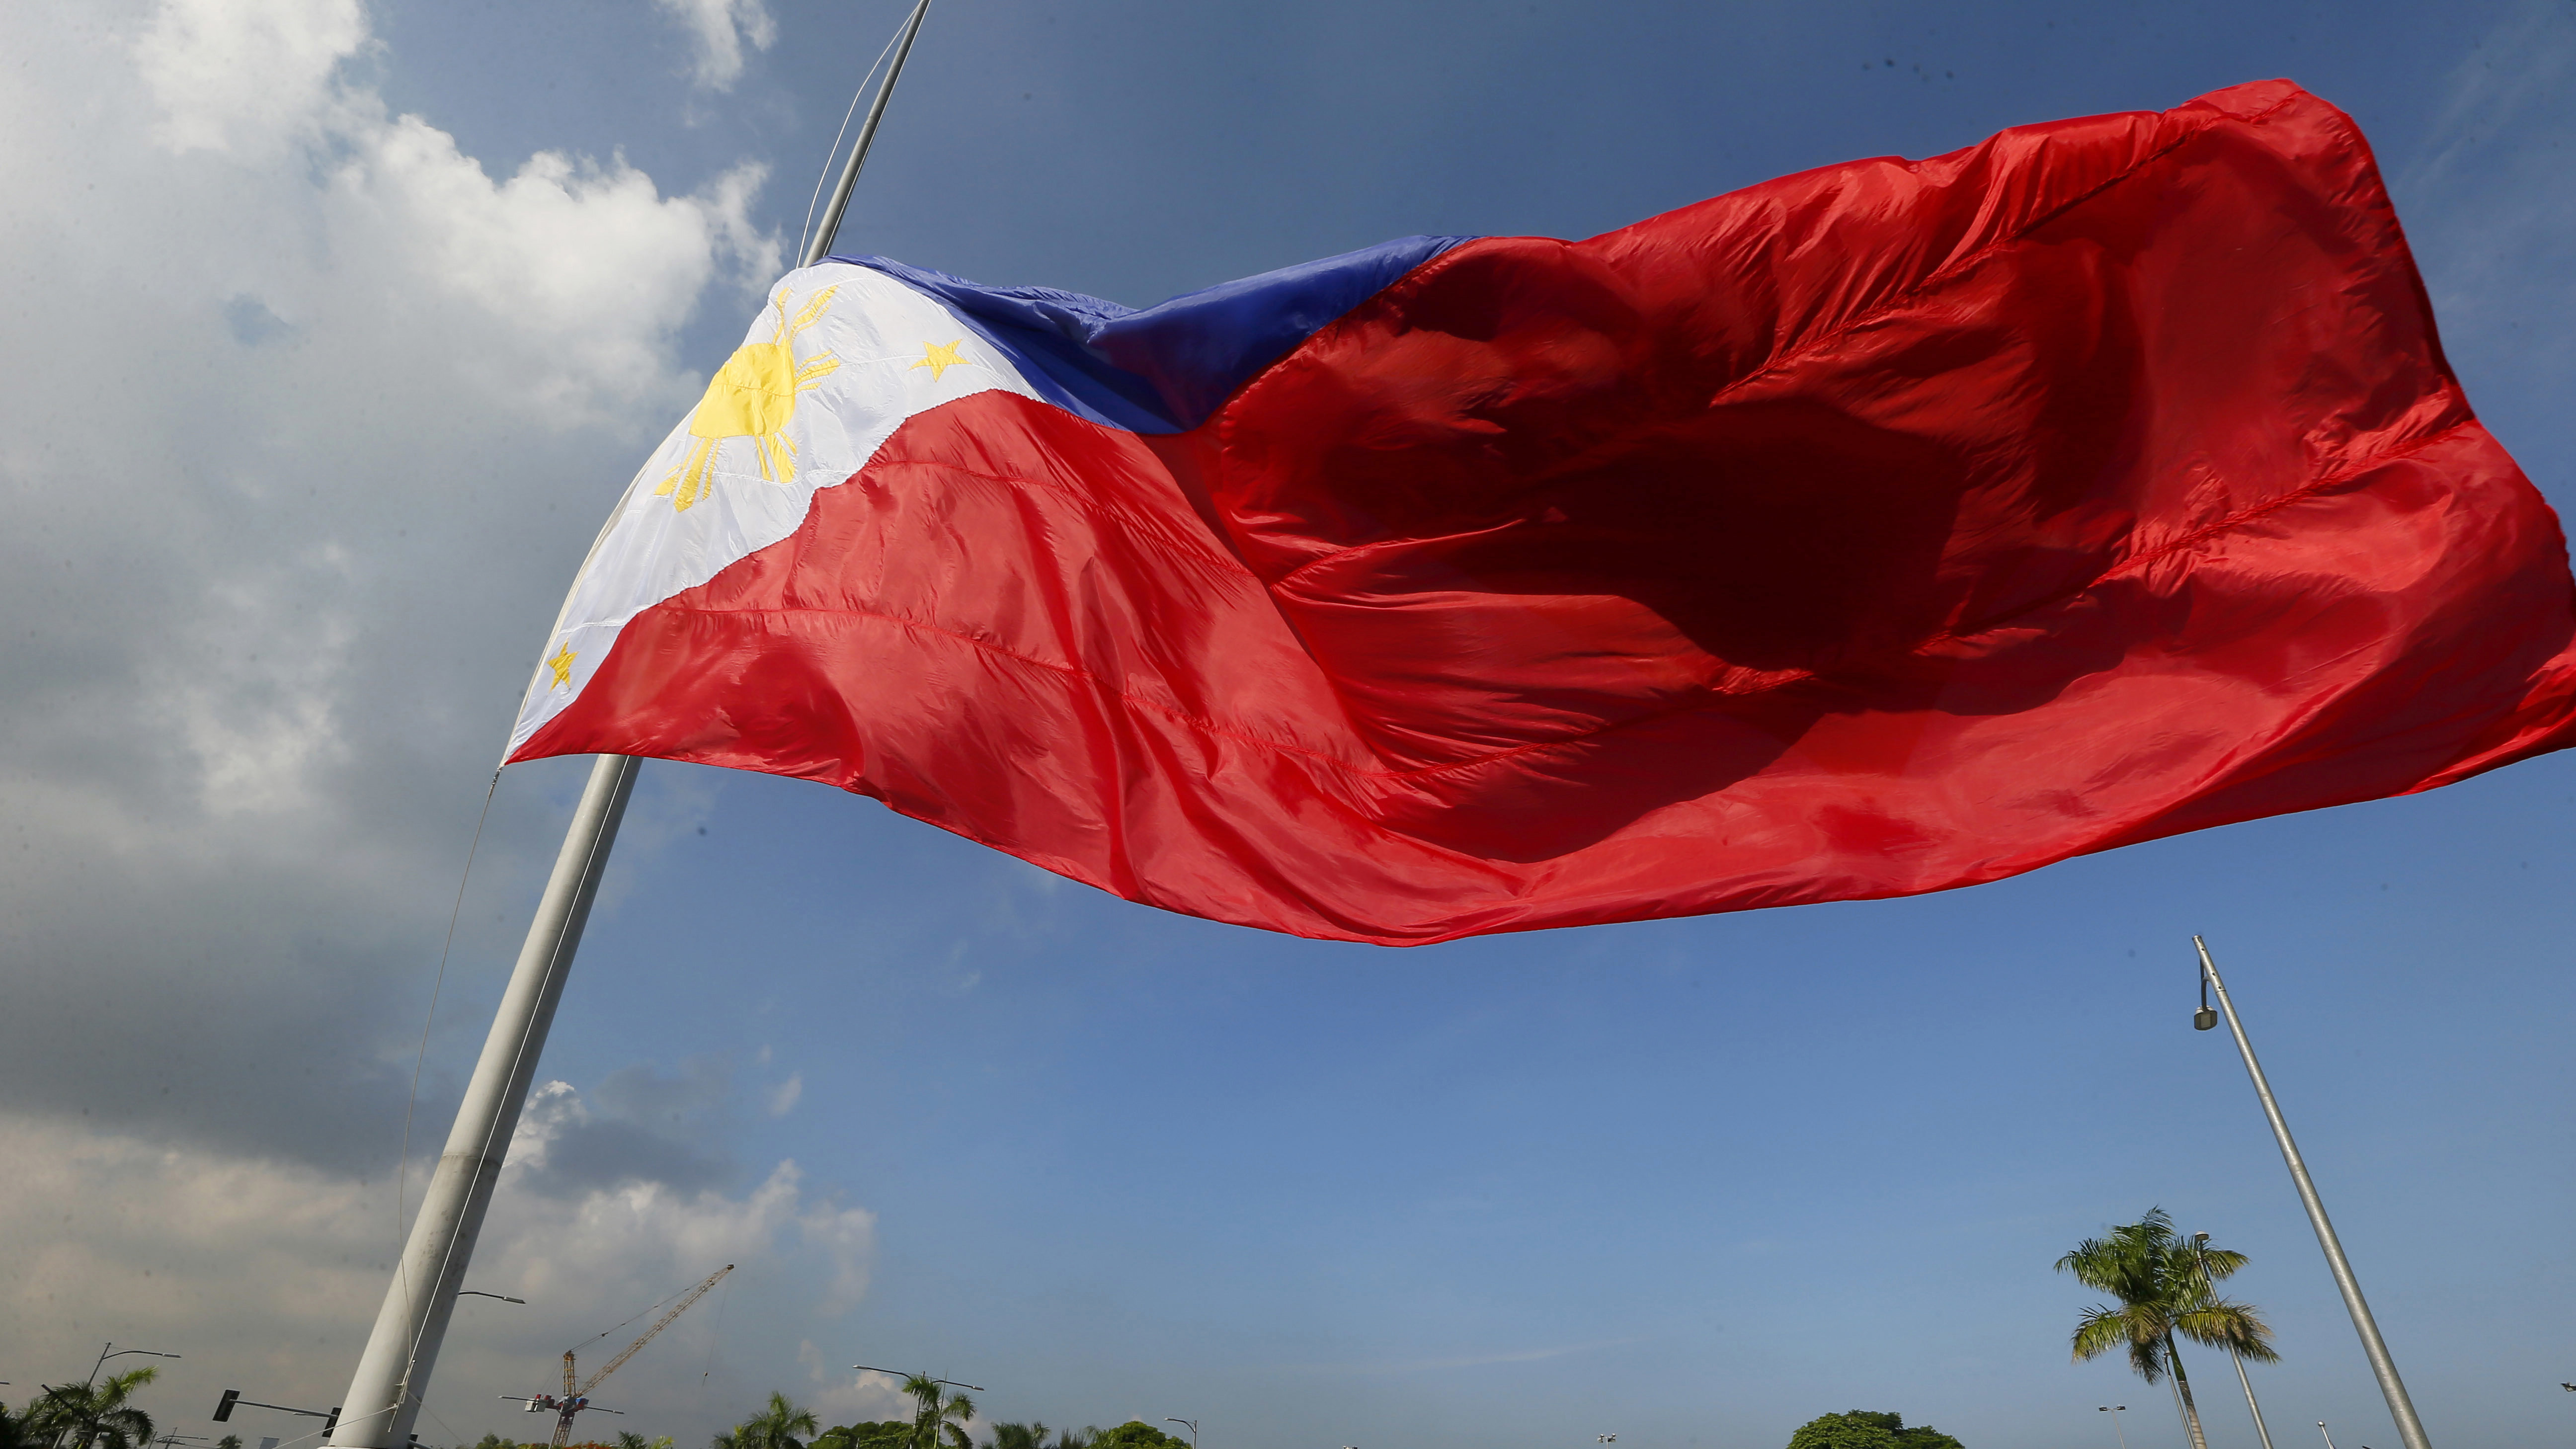 A giant Philippine flag is raised during a ceremony to celebrate the 118th Philippine Independence Day rites at the Rizal Park Sunday, June 12, 2016 in Manila, Philippines. Philippine President Benigno Aquino III led the rites for the last time as he is to relinquish his presidency to President-elect Rodrigo Duterte at the end of the month. (AP Photo/Bullit Marquez)